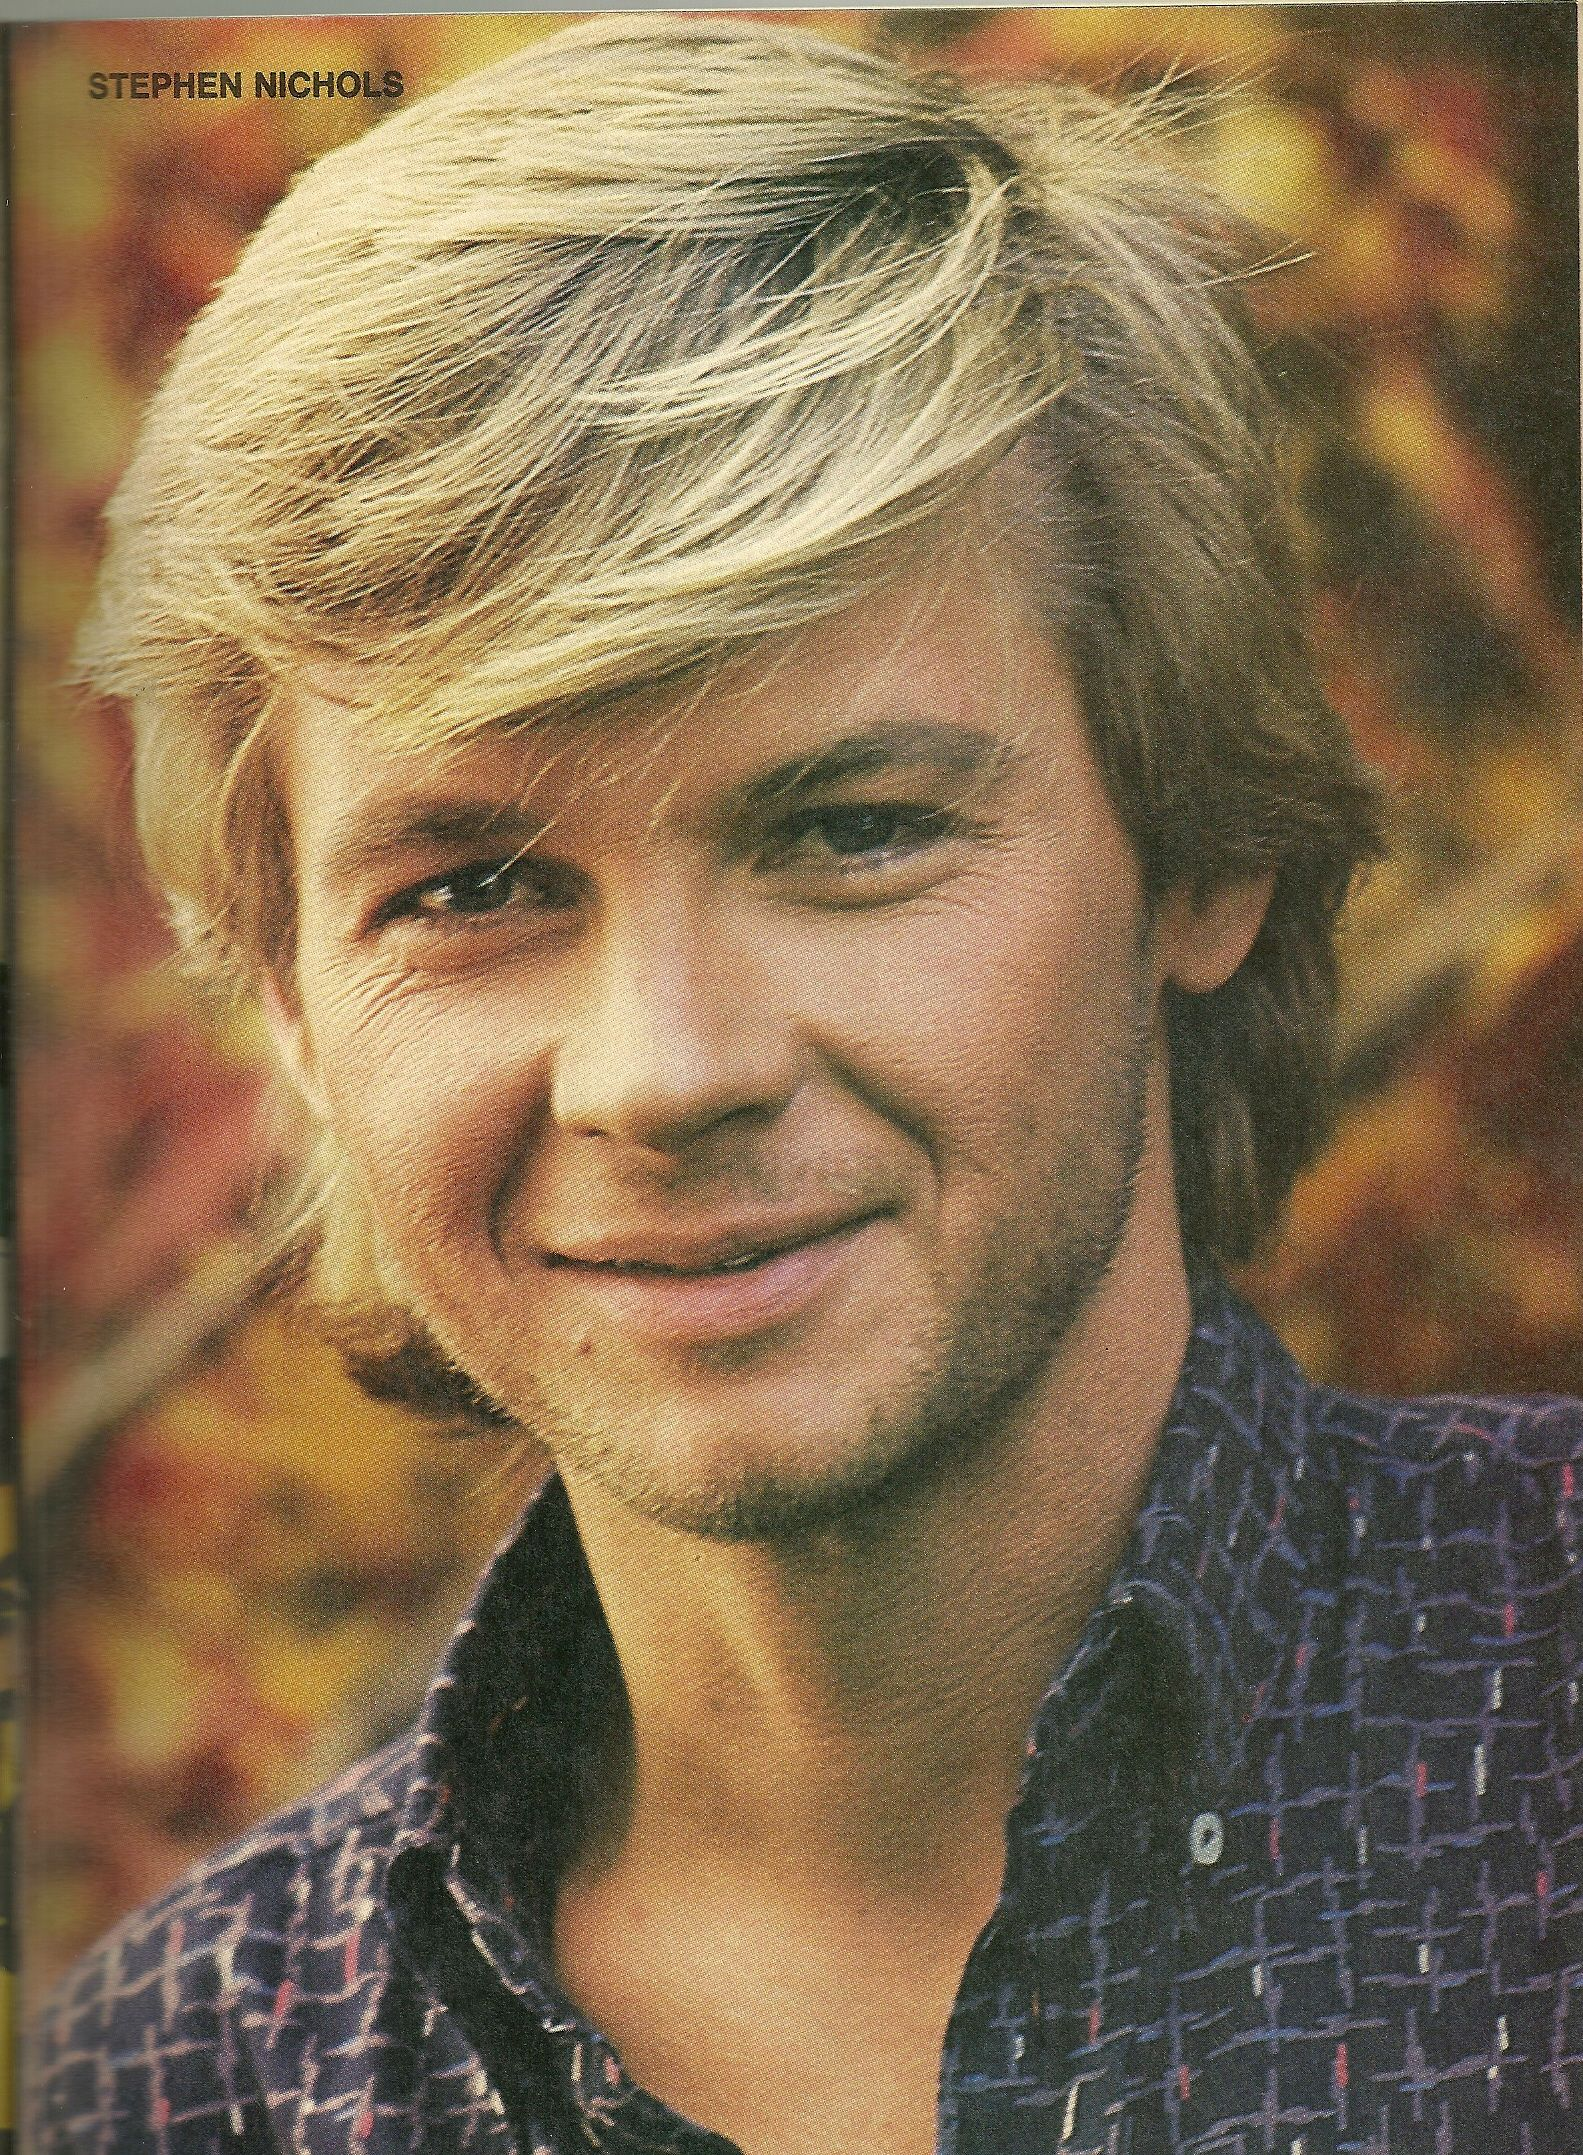 Stephen Nichols Days Of Our Lives Soap Opera Dool